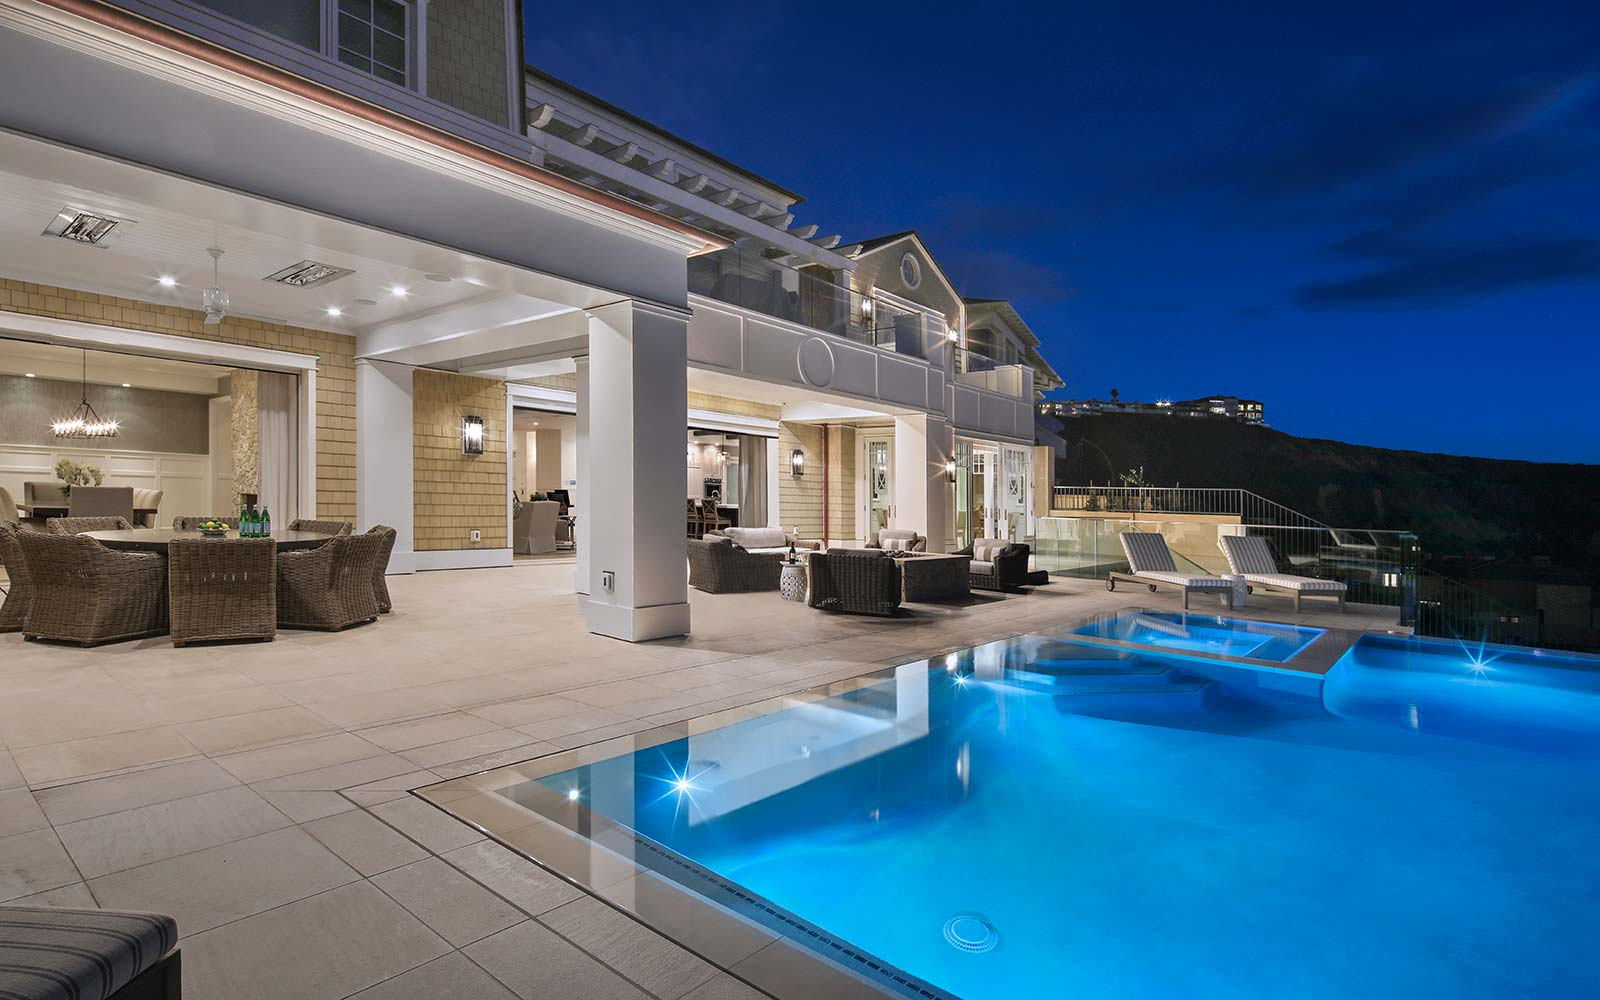 beach-view-patio-pool-night